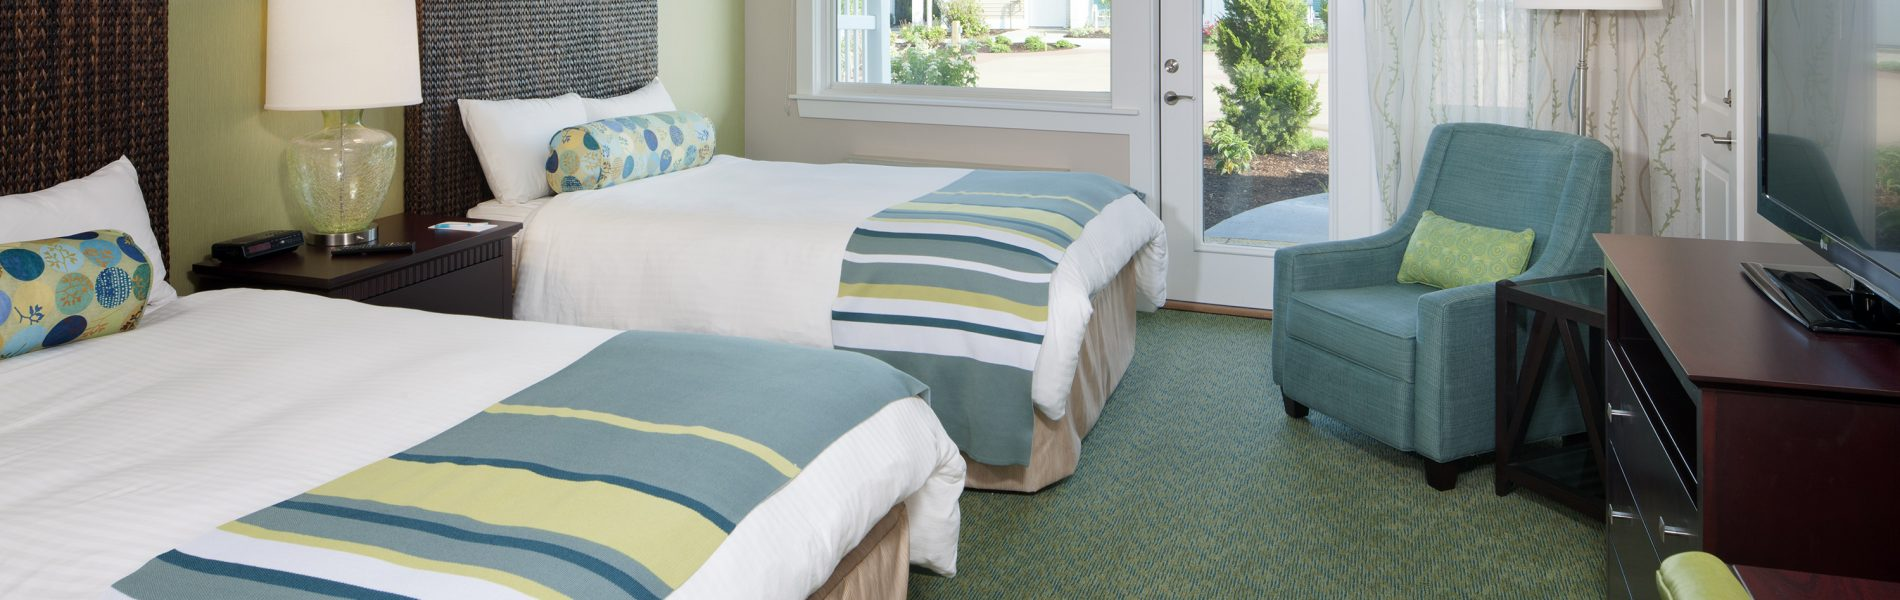 Falmouth Lodging in our Guest Rooms - Sea Crest Beach Hotel